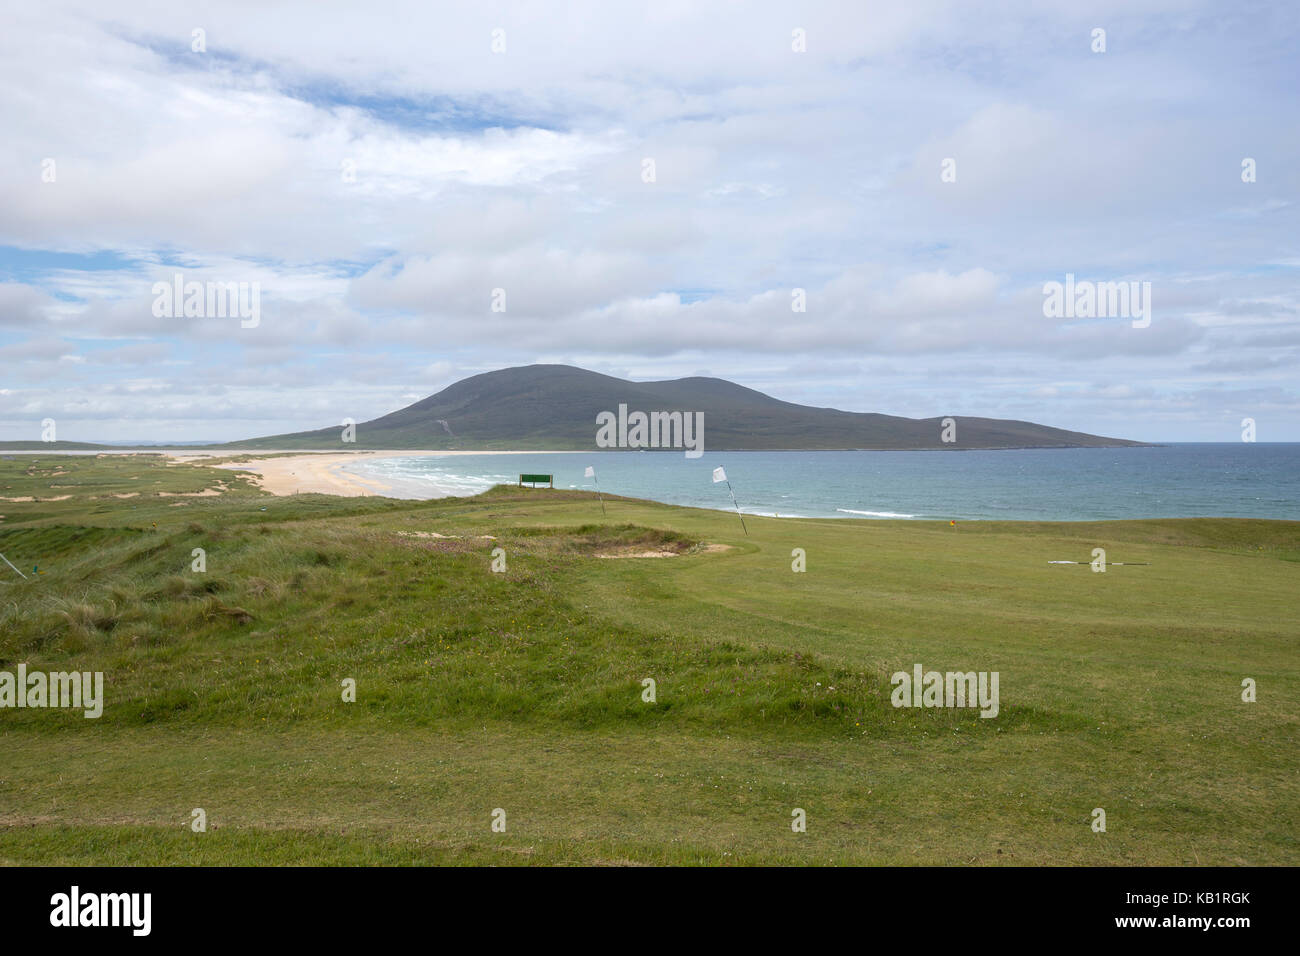 The Isle of Harris Golf Club near a bech in Lewis and Harris island, Outer Hebrides, Scotland - Stock Image